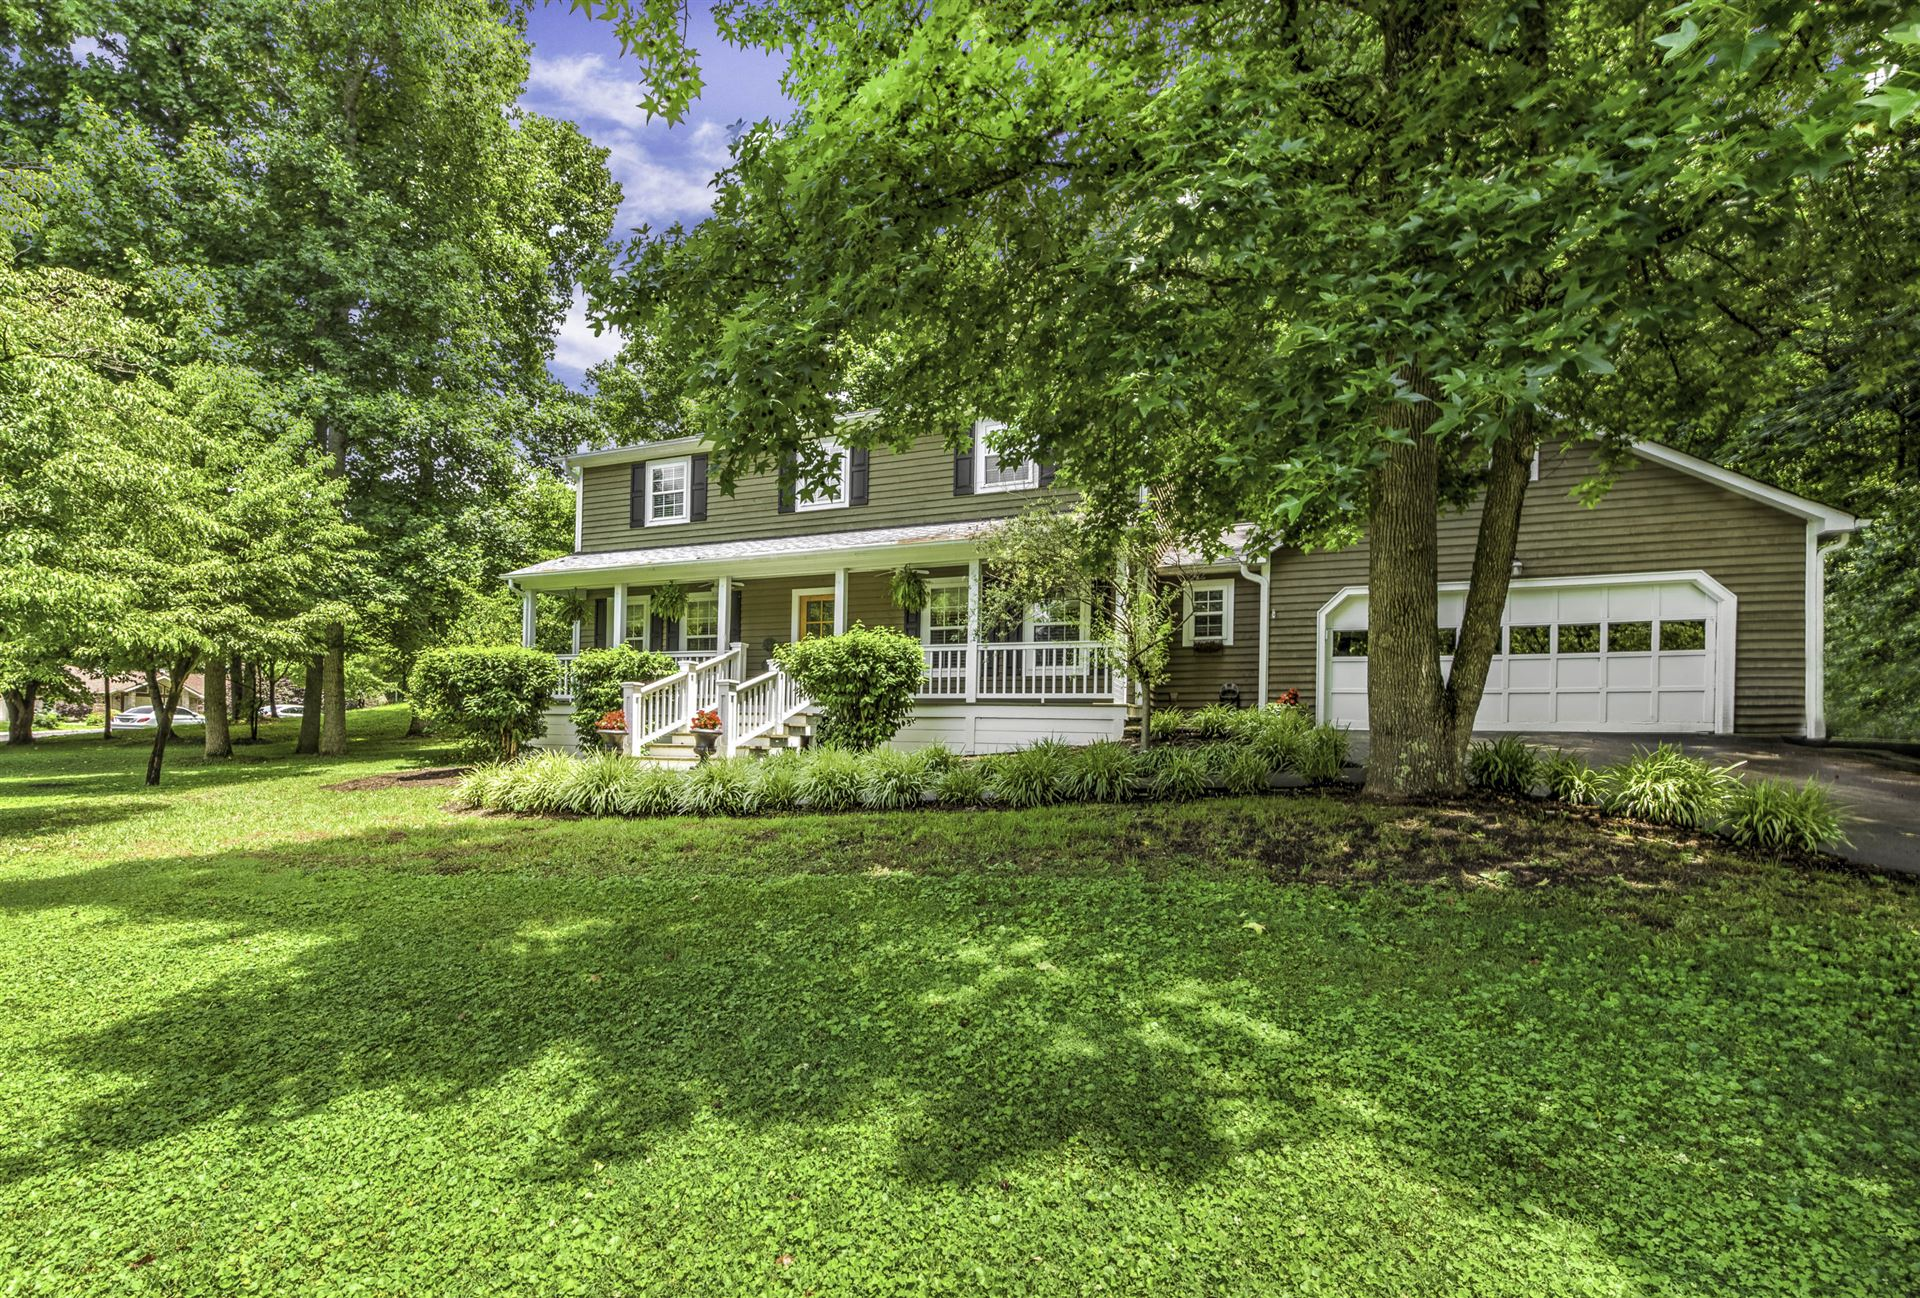 Photo of 102 Belle Creek Drive, Oak Ridge, TN 37830 (MLS # 1121657)